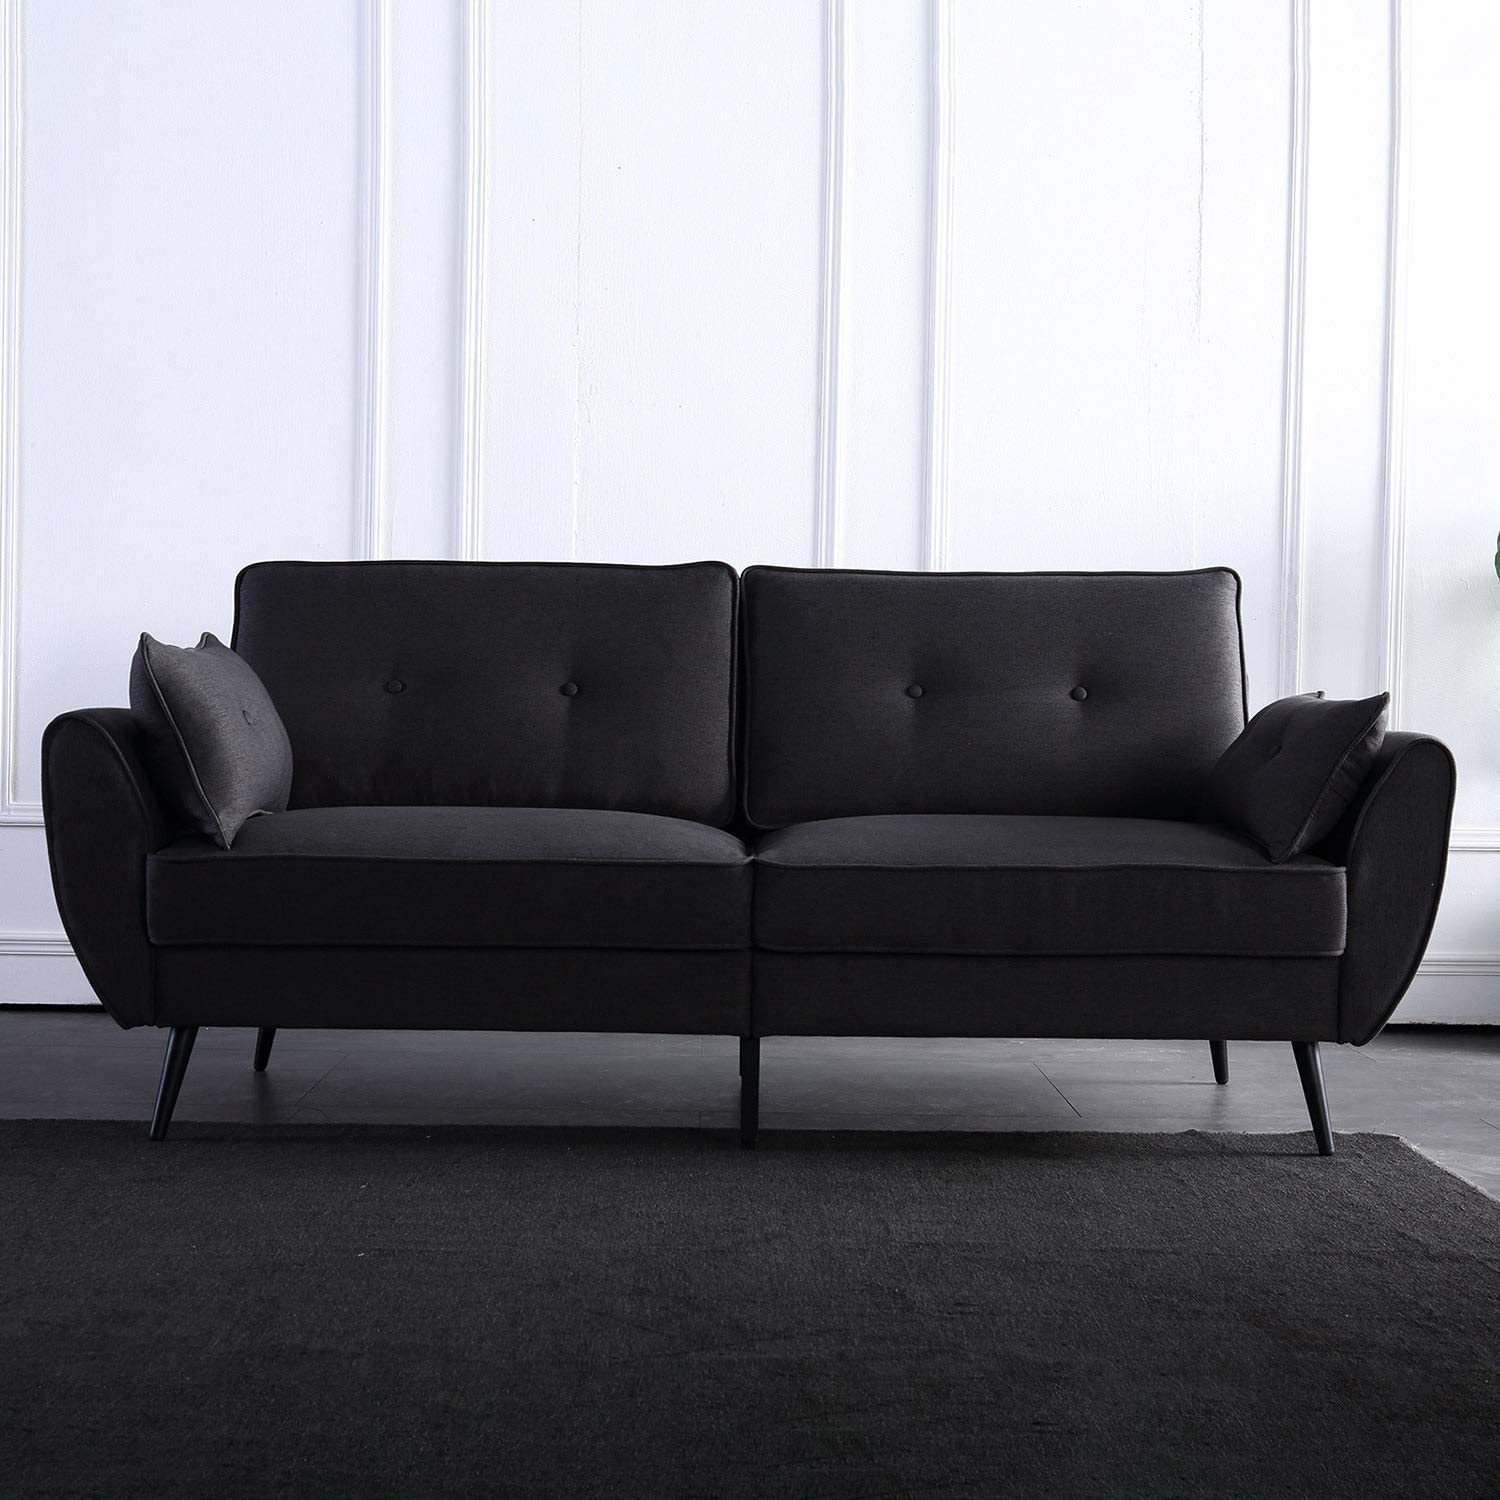 Haa Simple and Stylish Small Sofa Modern Fabric Couches for Living Room, Solid Wood Frame Three Seat- Sectional Couch Gray/Deepen Gray (Deepen Gray)